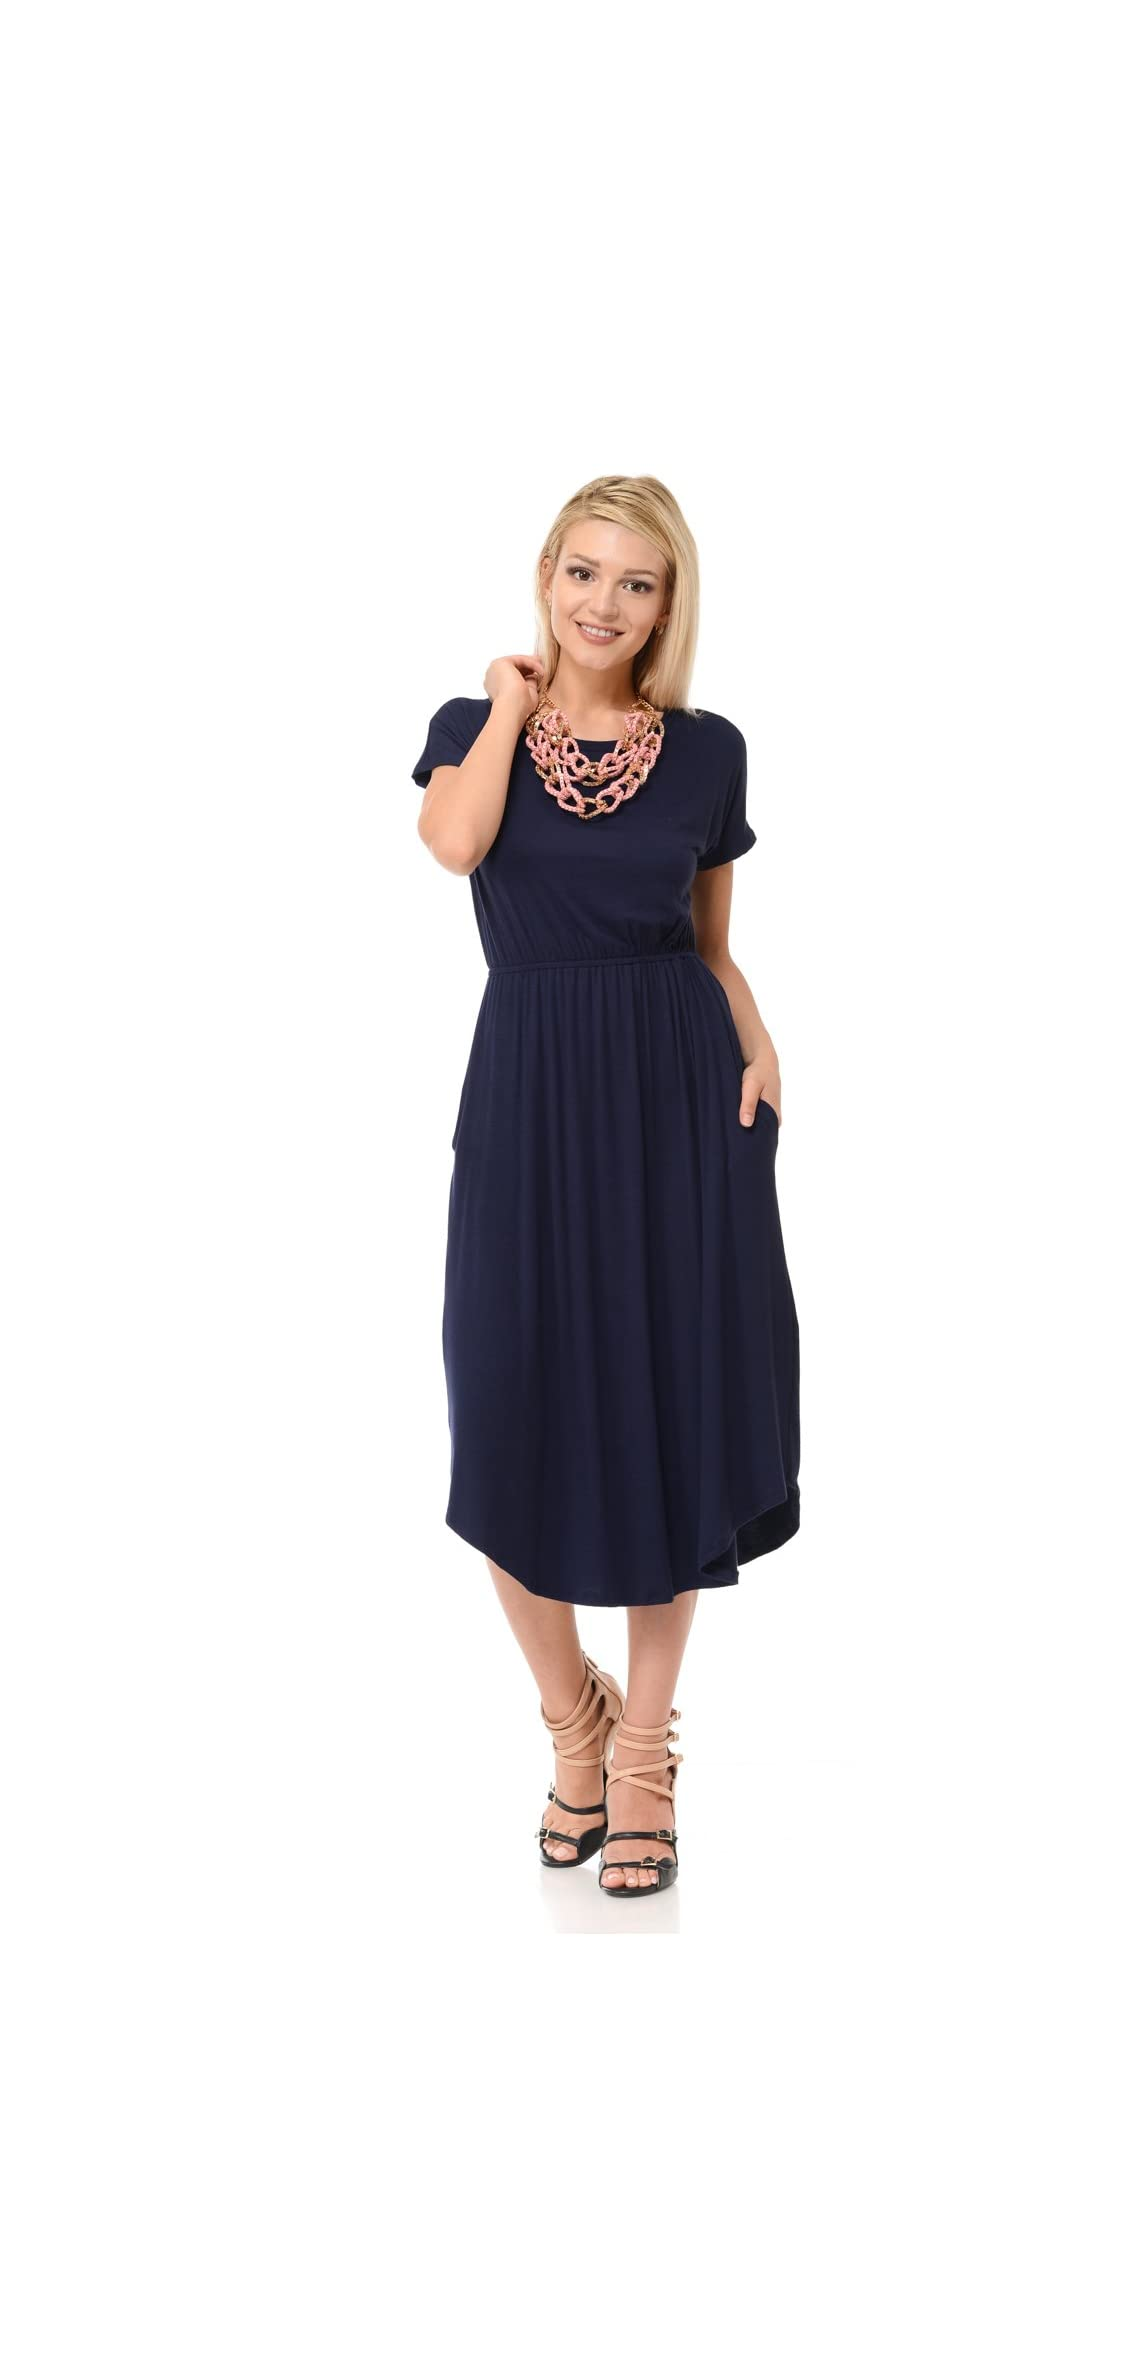 Women's Short Sleeve Flare Midi Dress With Pockets -